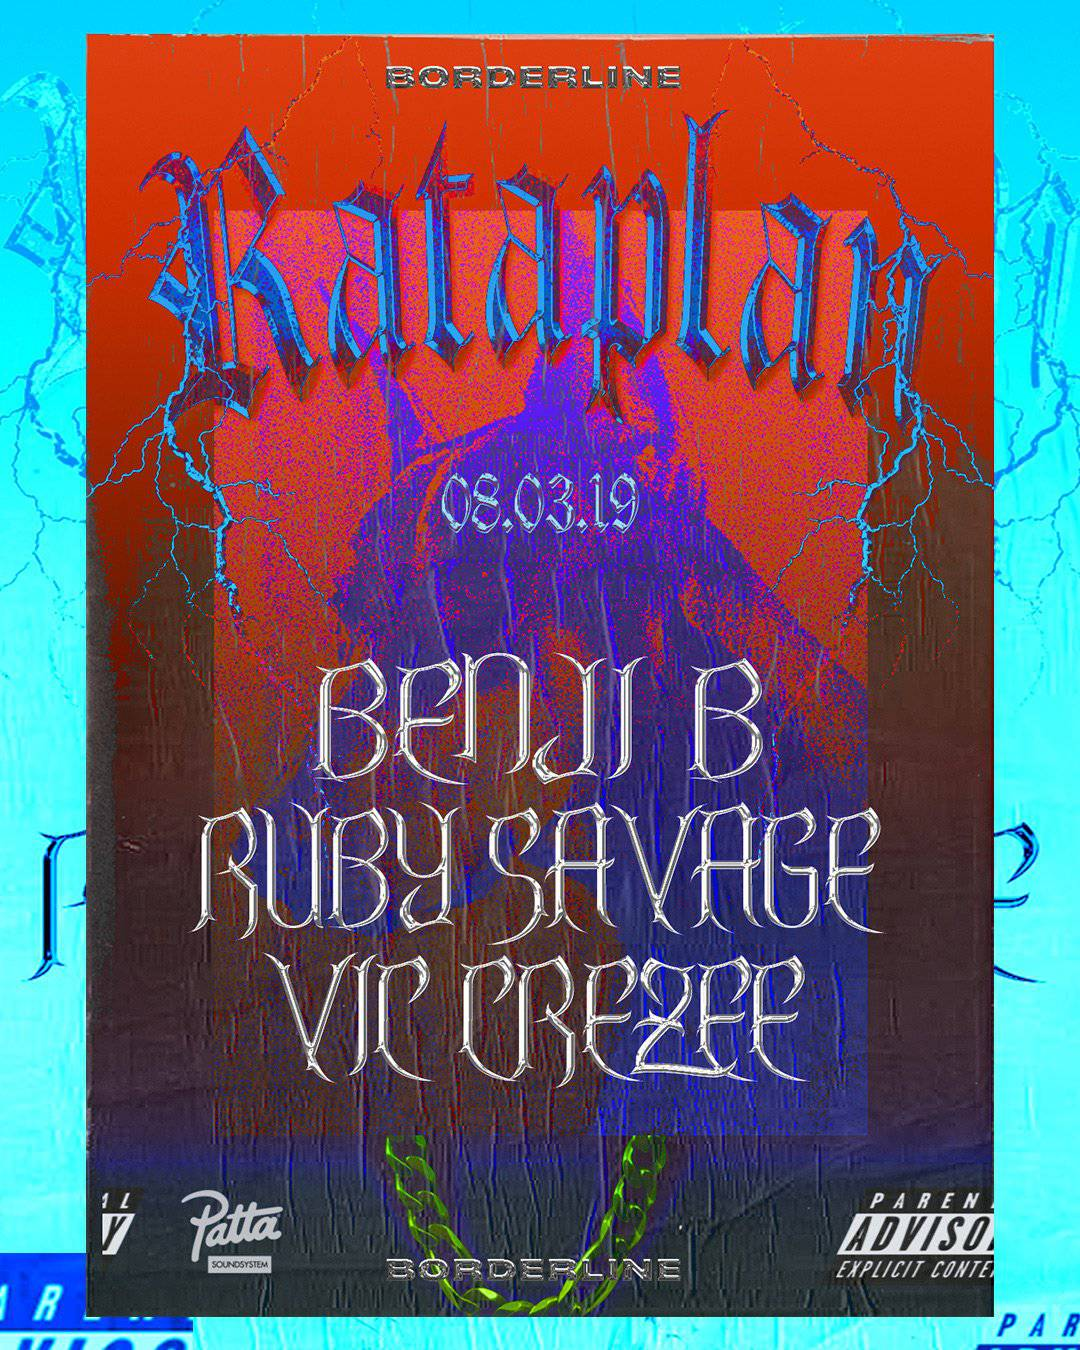 flyer for rataplan clubnight borderline